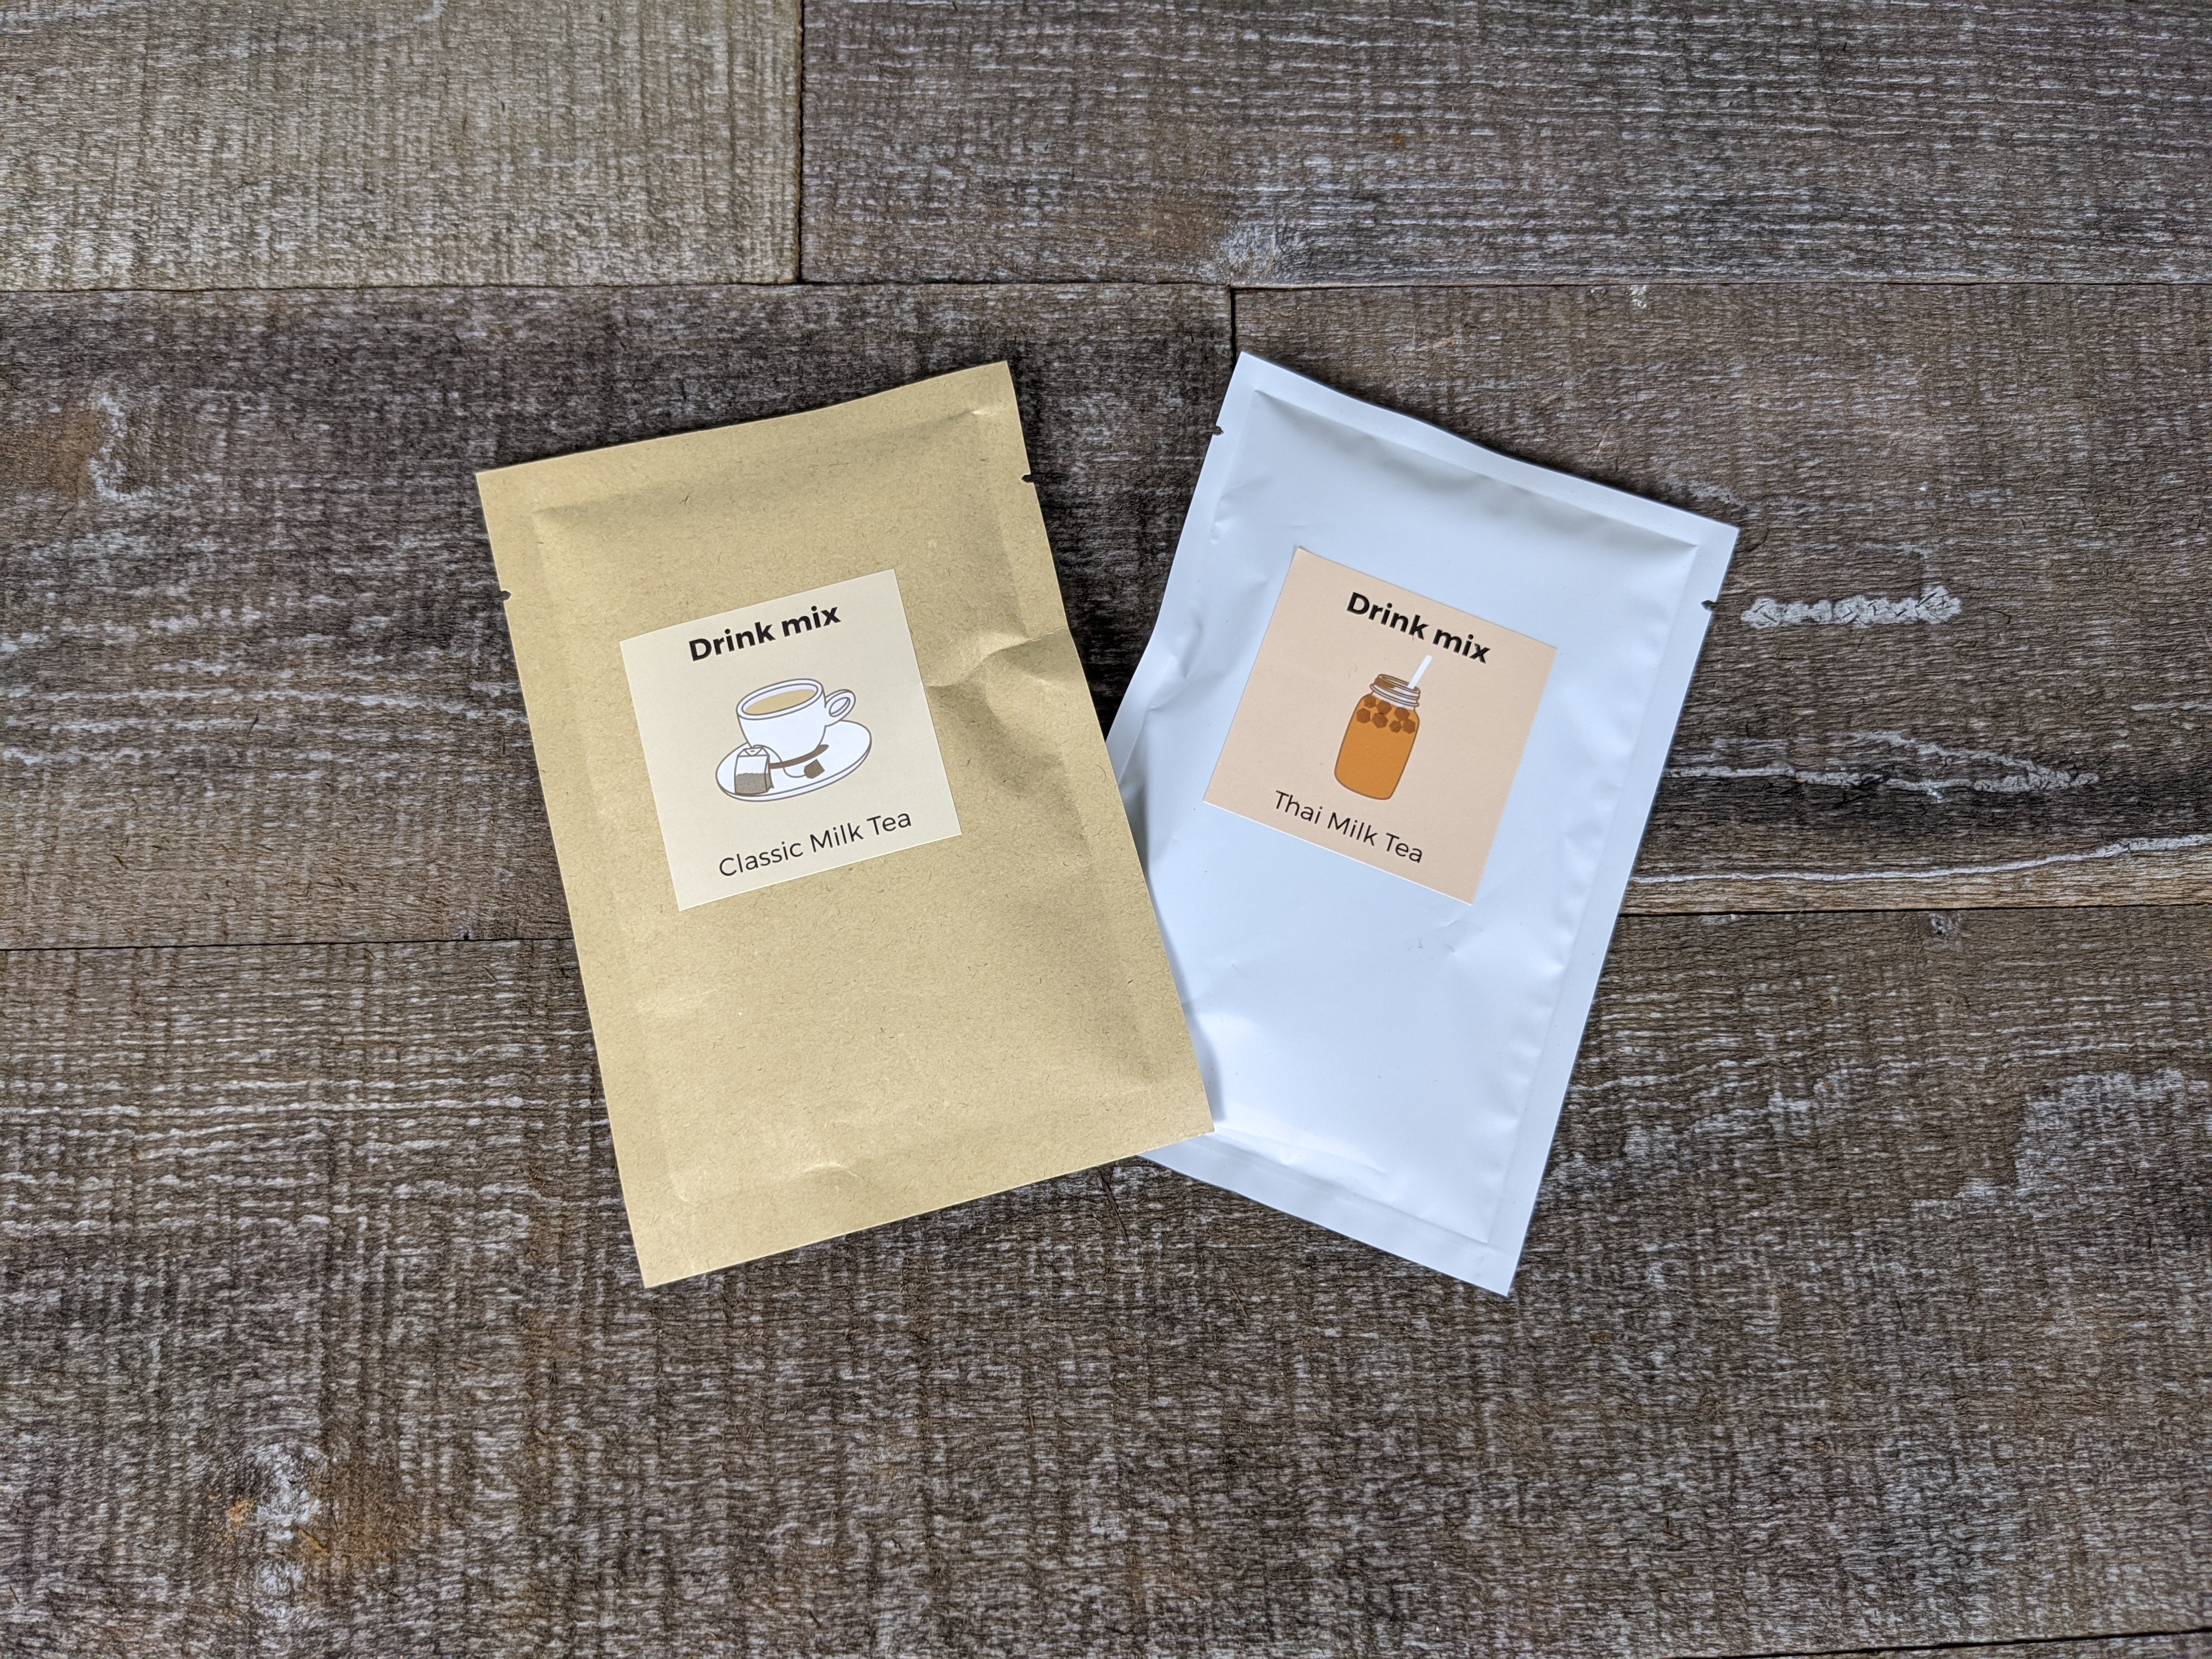 Classic milk tea pkg and thai tea pkg